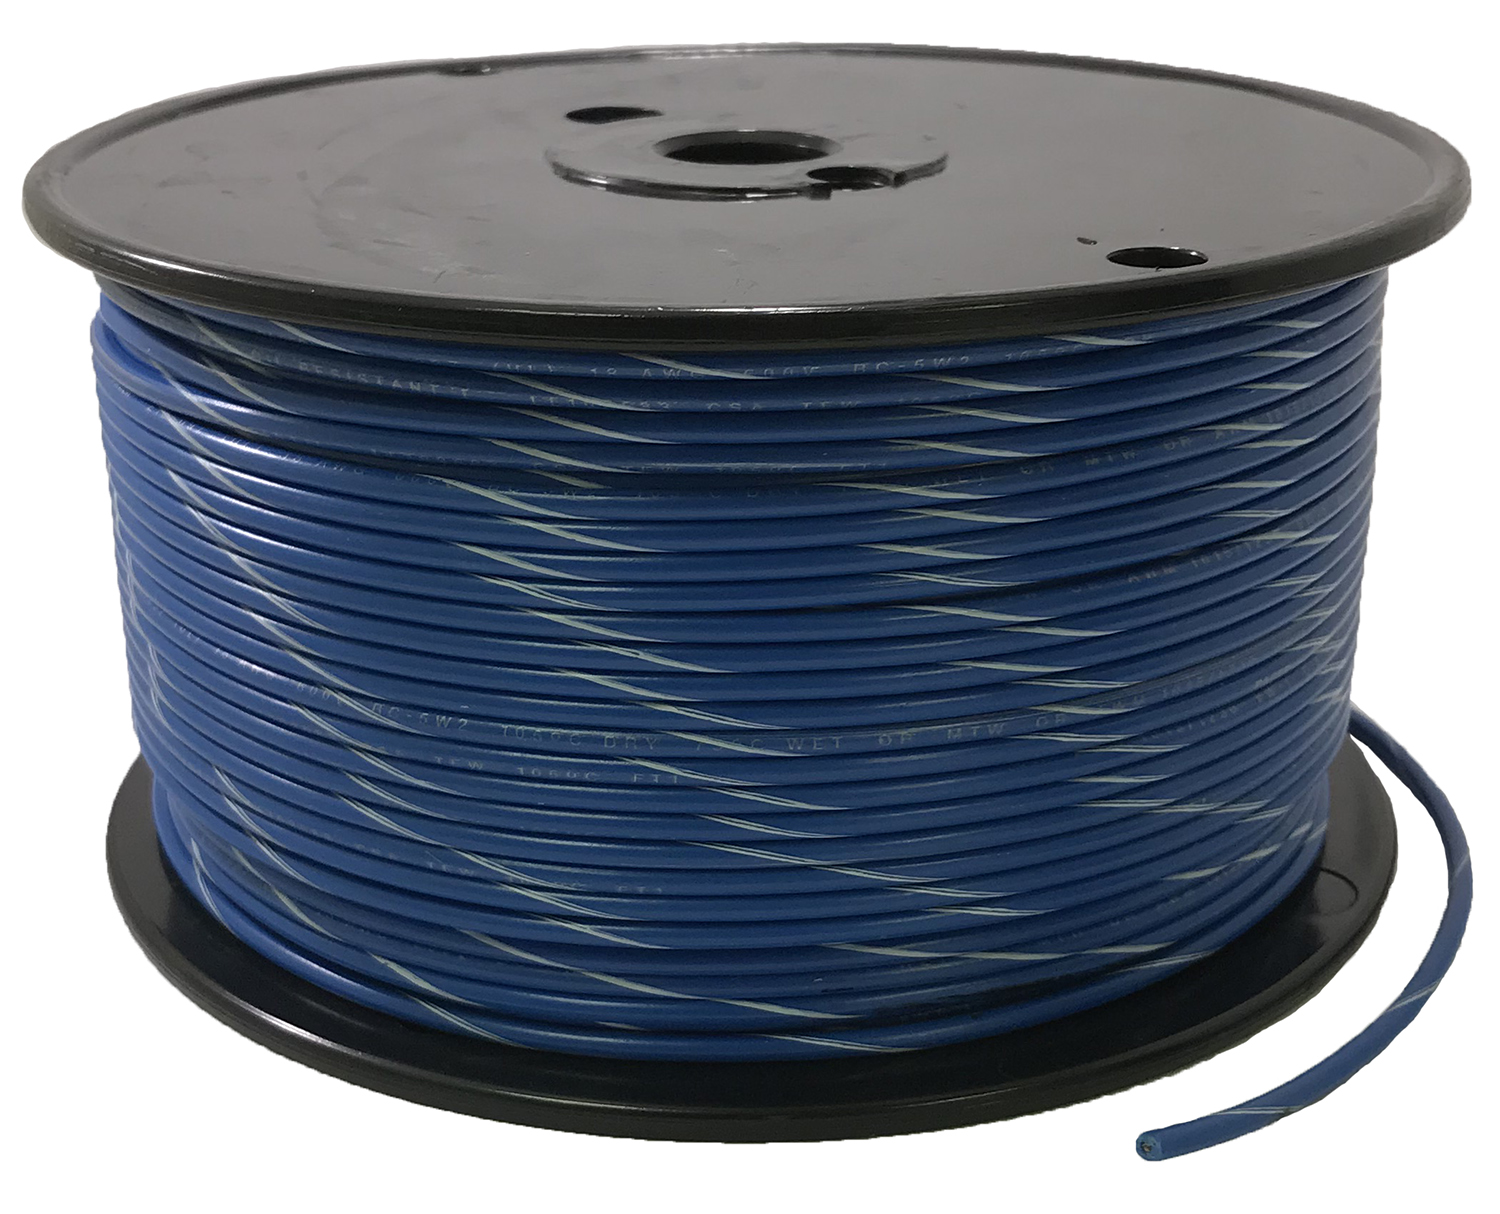 hight resolution of sherco auto marine supply now offers over 160 different color combinations of marine grade usa made tinned copper striped tracer wire click to see list